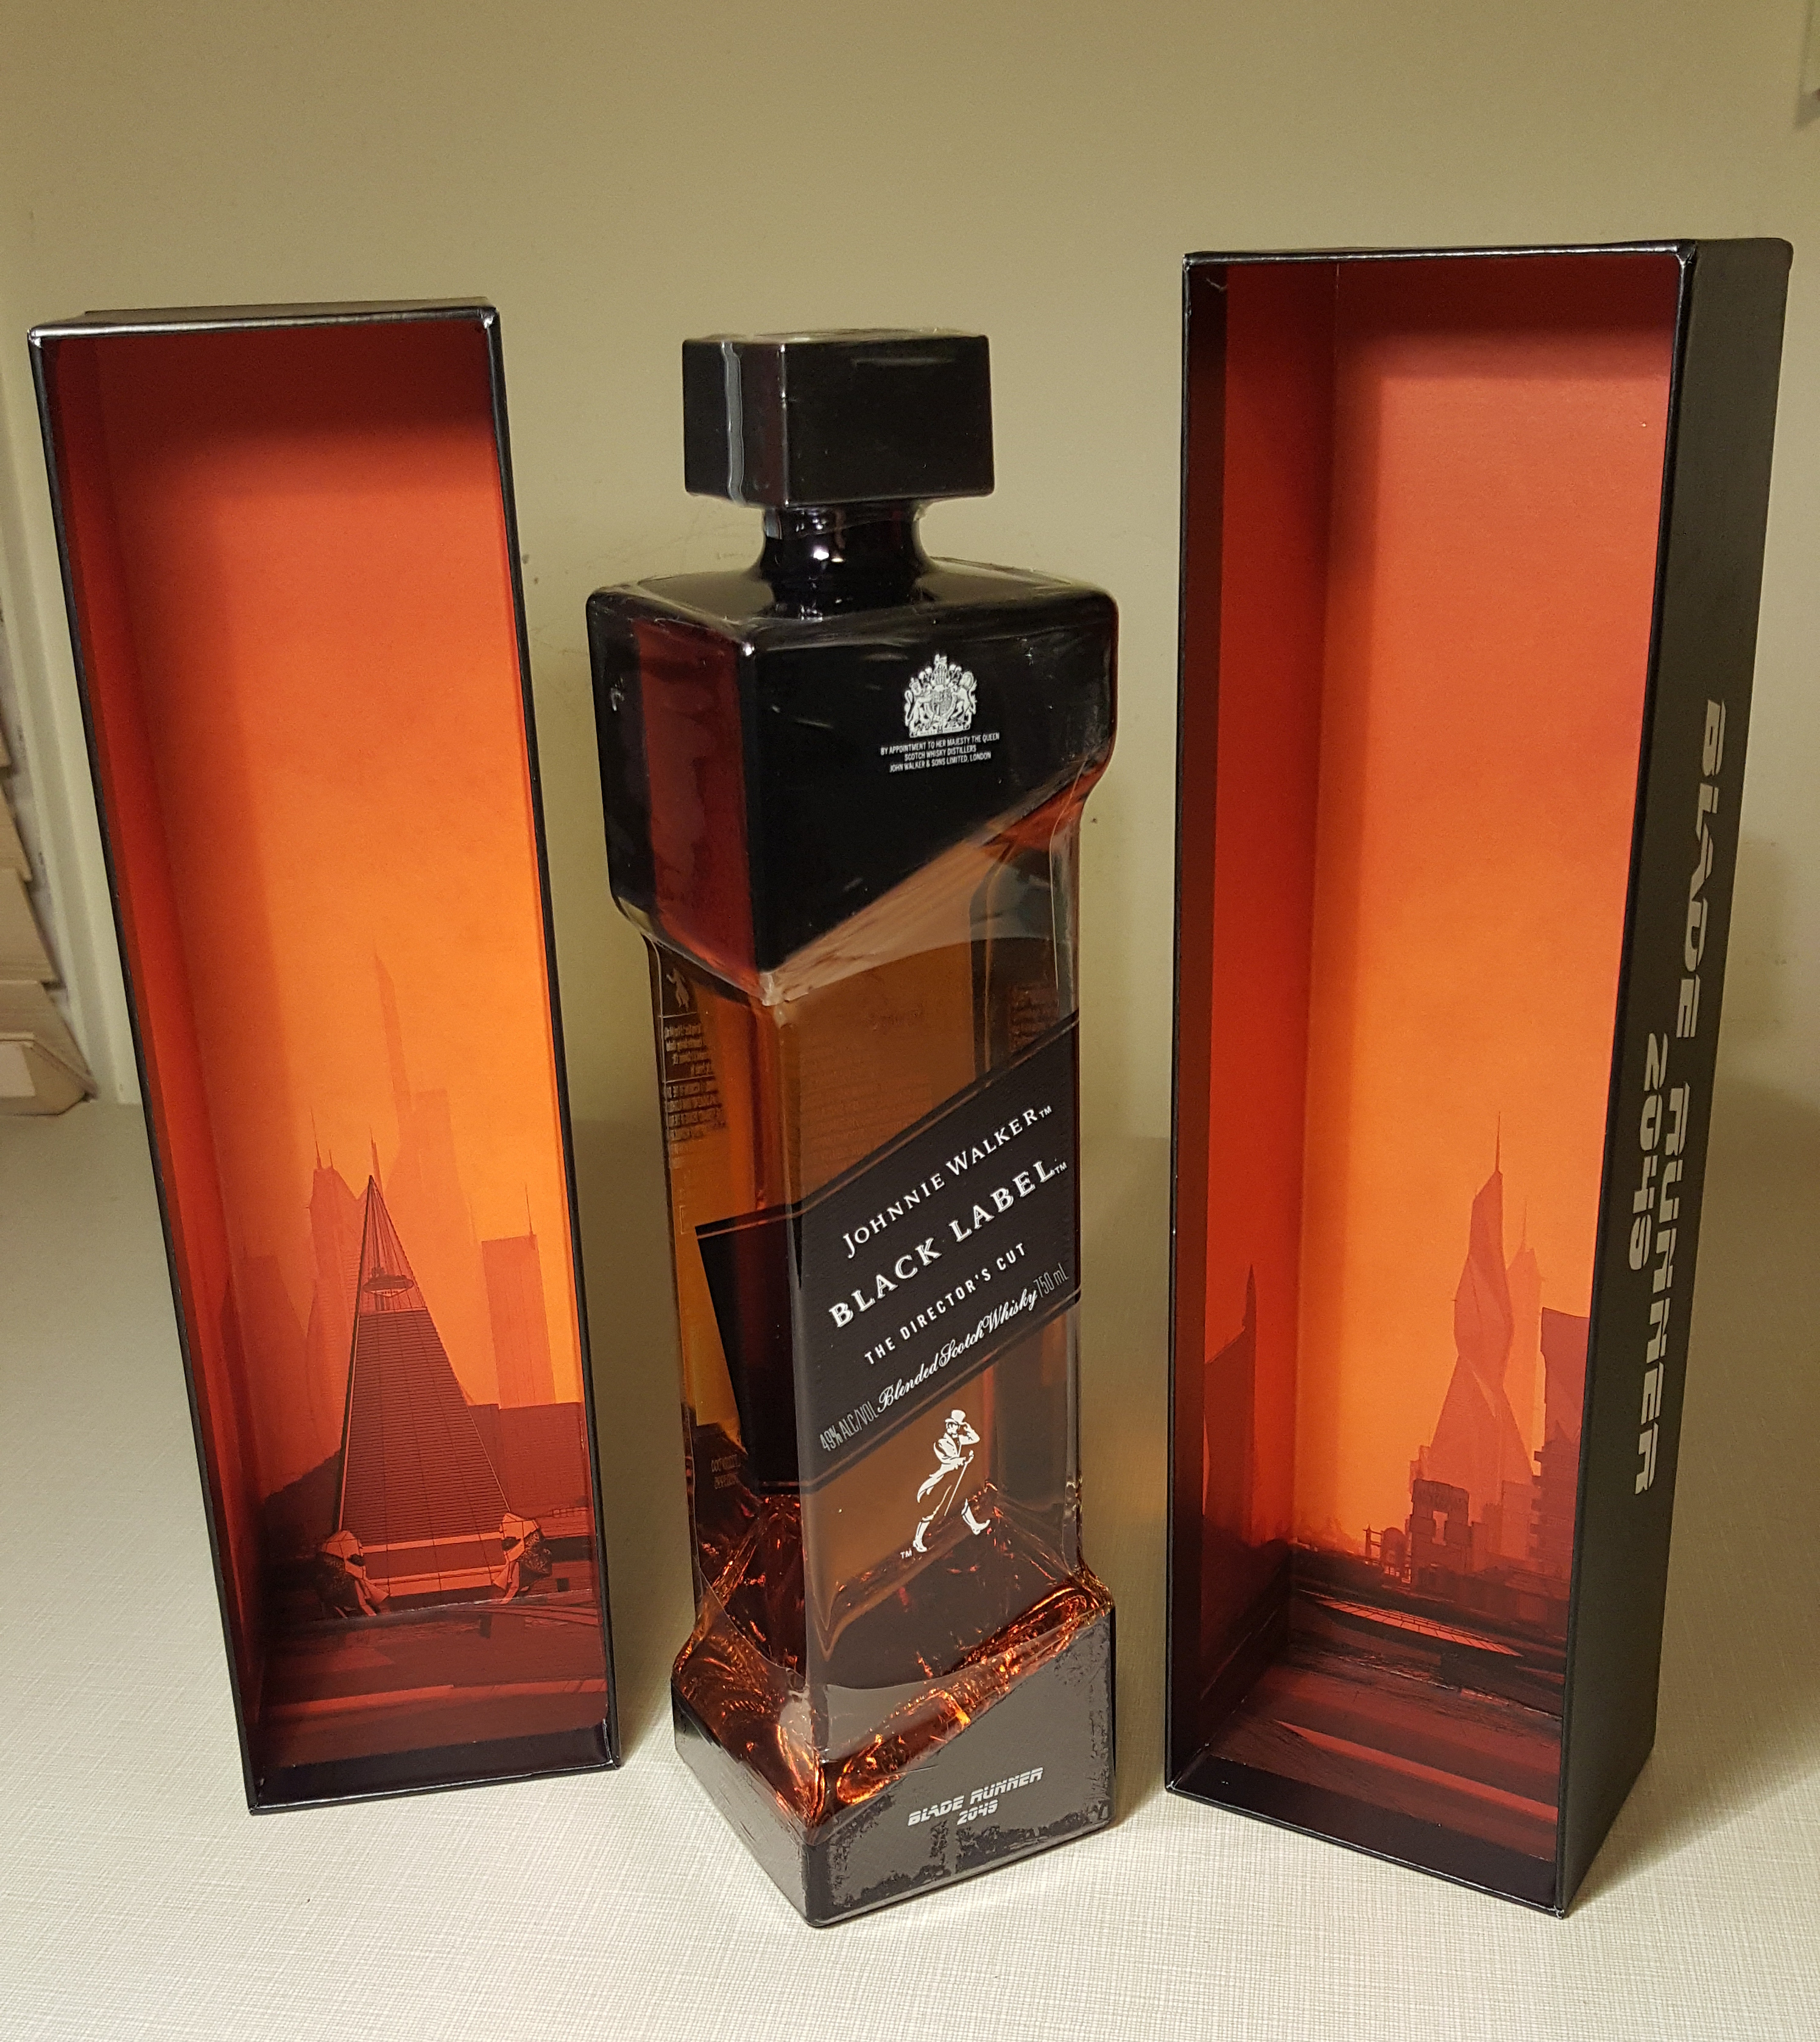 johnnie-walker-blade-runner-whiskey-box-openingjohnnie-walker-blade-runner-whiskey-box-opening